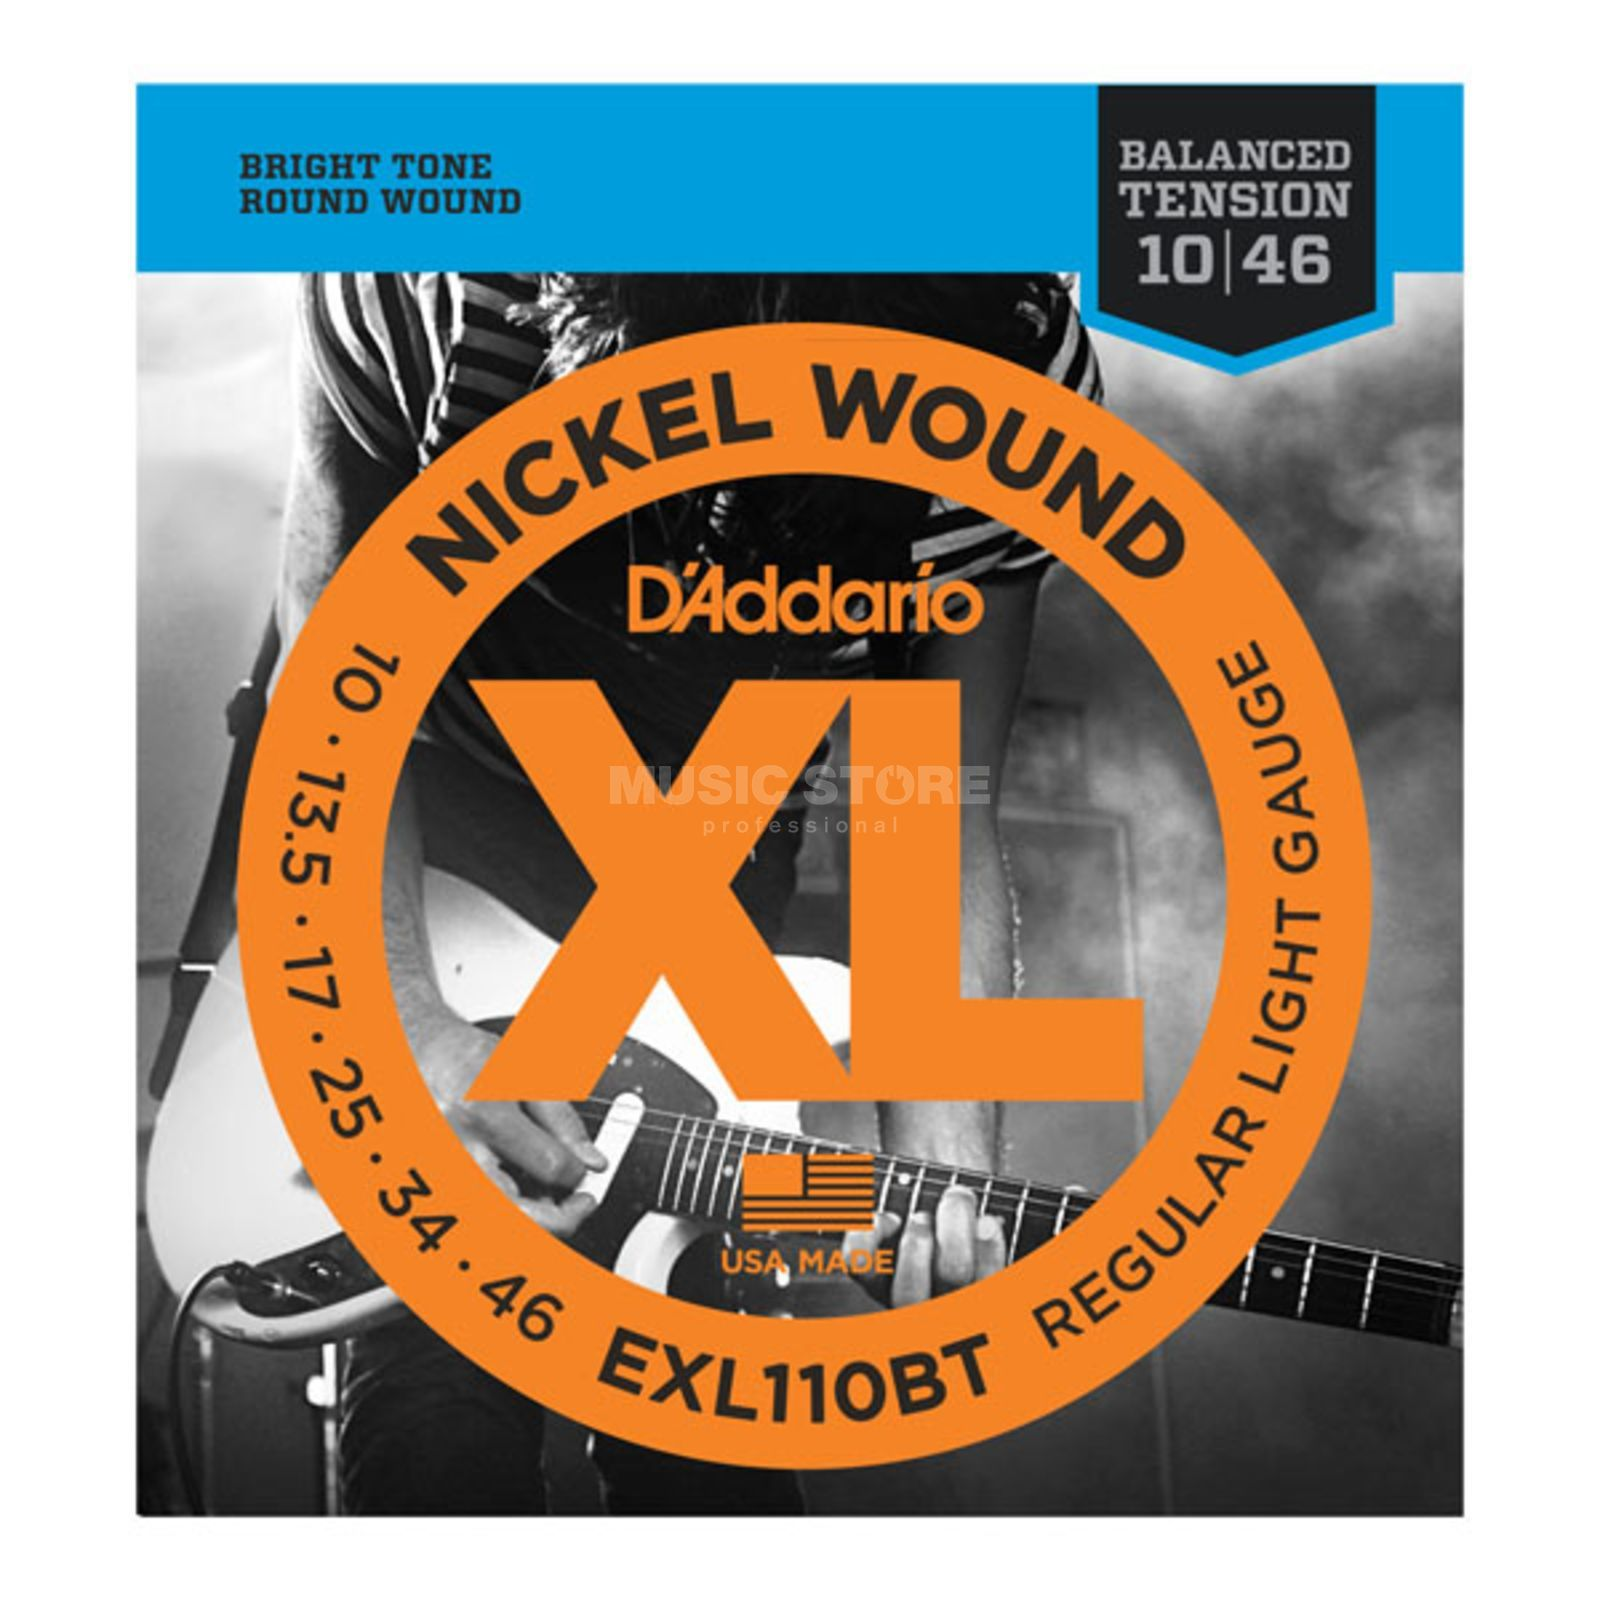 D'Addario EXL110BT 10-46 Balanced Tension Nickel Wound Produktbild